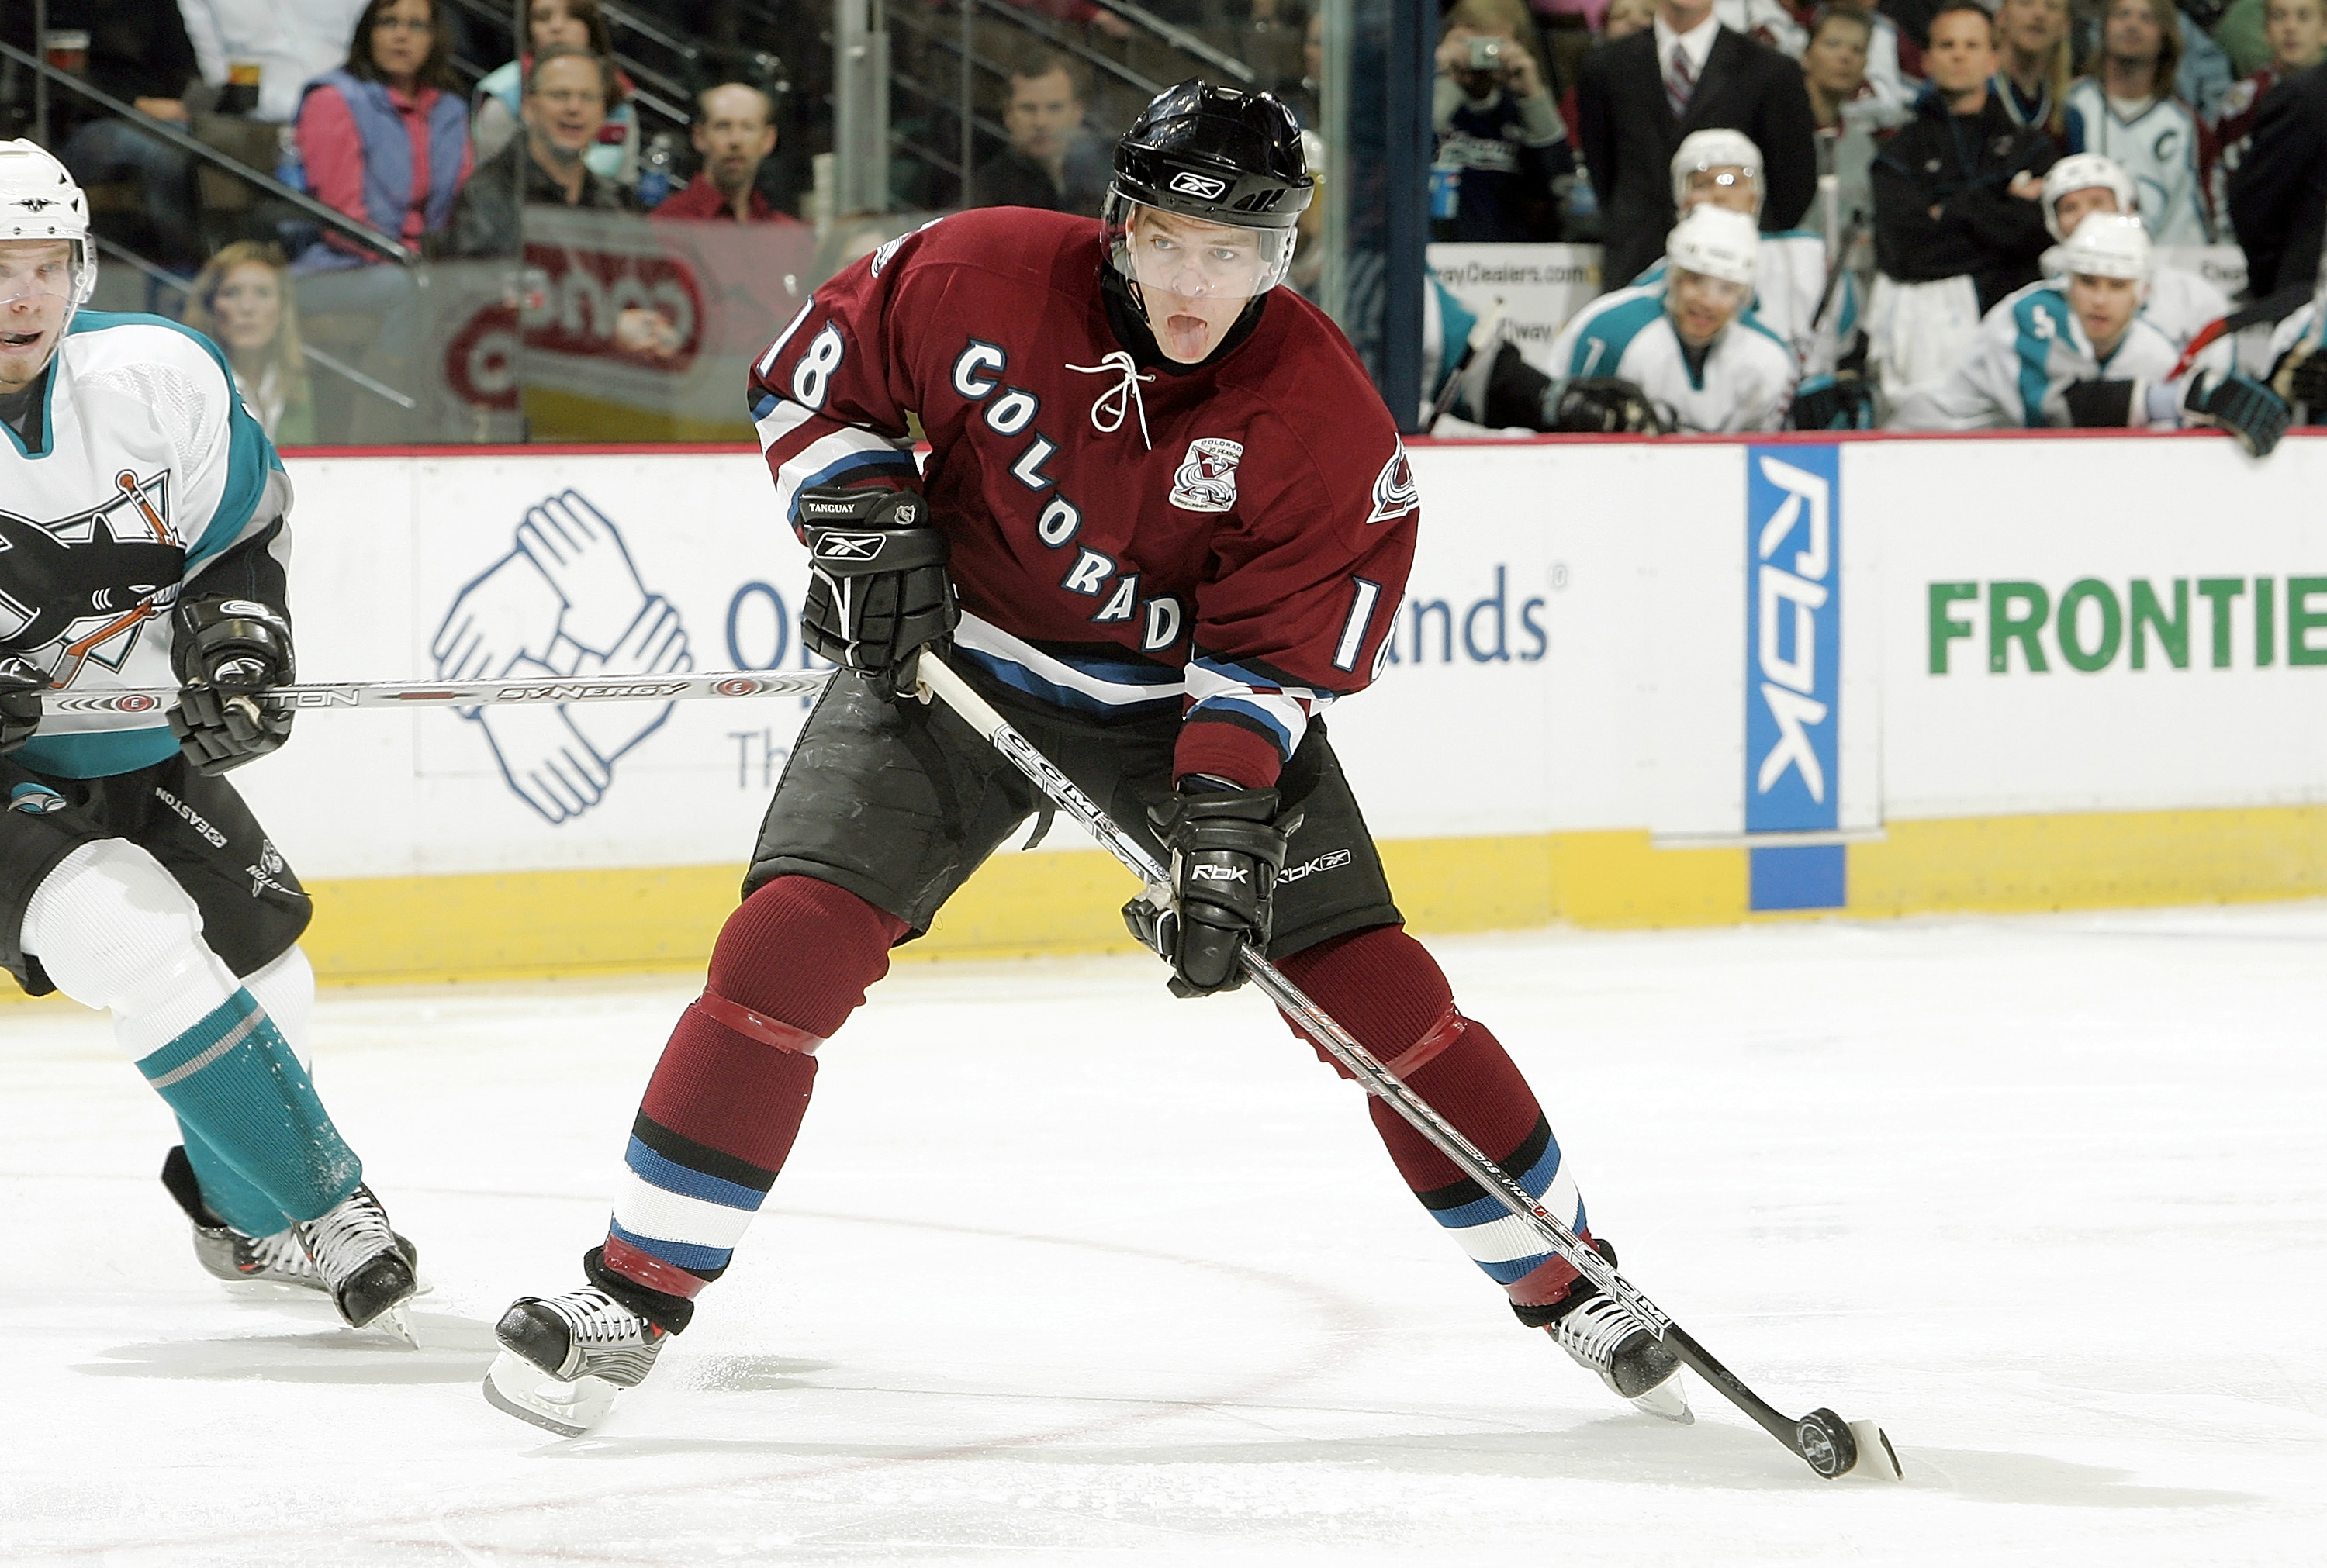 DENVER - NOVEMBER 8:  Alex Tanguay #18 of the Colorado Avalanche scores against the San Jose Sharks in the first period on November 8, 2005 at the Pepsi Center in Denver, Colorado.  (Photo by Brian Bahr/Getty Images)